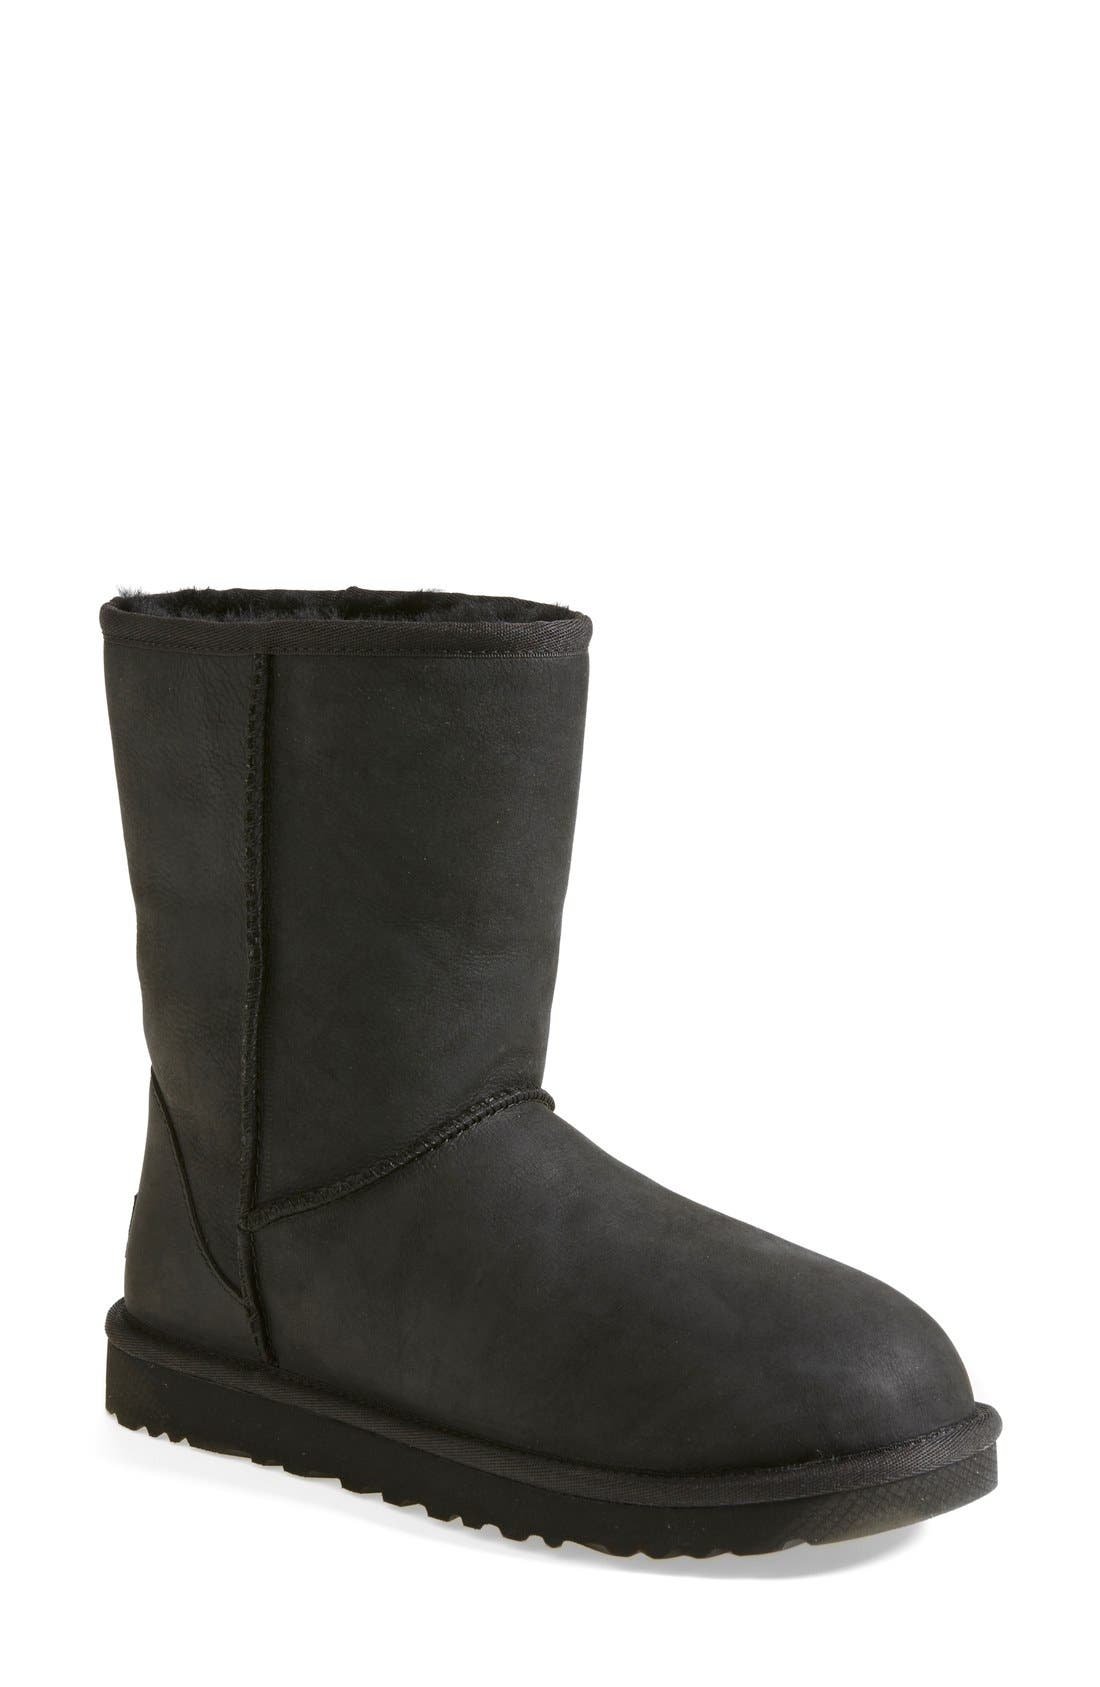 'Classic Short' Leather Water Resistant Boot, Main, color, 001